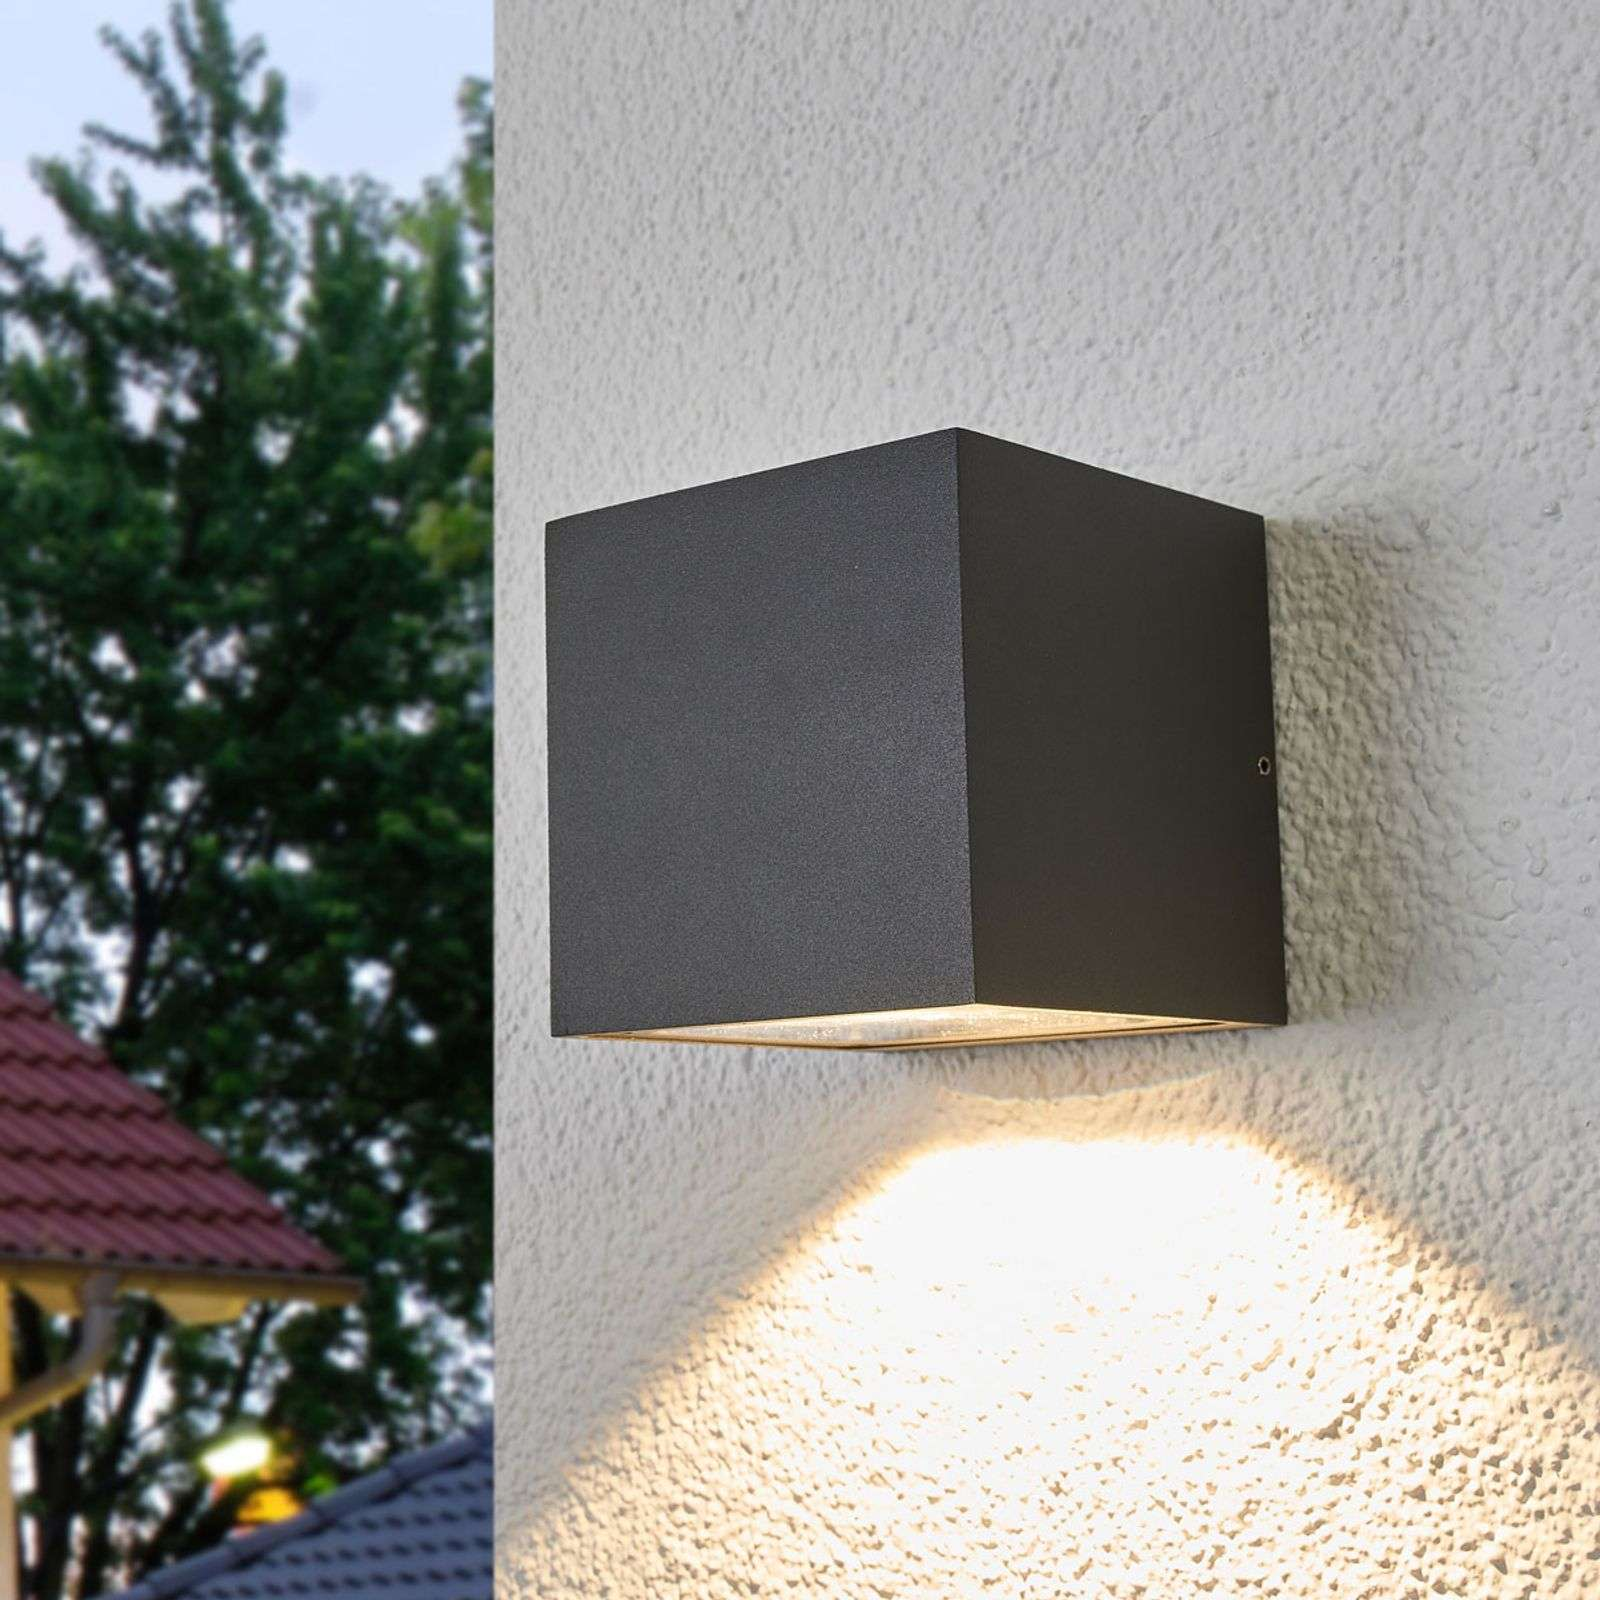 Merjem - applique LED da esterni in grigio scuro